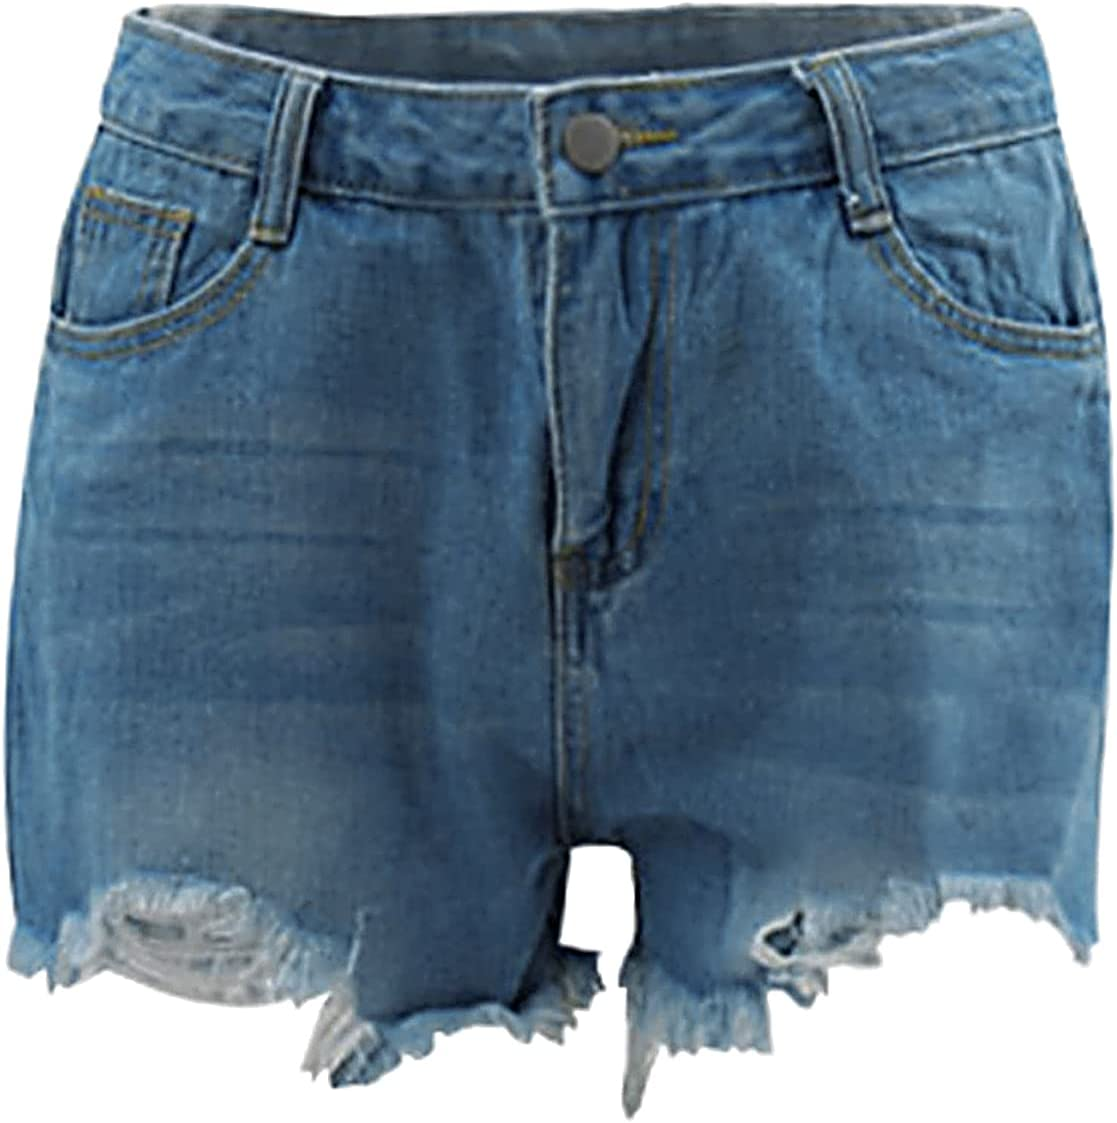 Mid Waist Frayed Denim Shorts for Women Summer Washed Distressed Jean Hot Pants Casual Stretchy Pocketed Short Jeans (Light Blue,XX-Large)